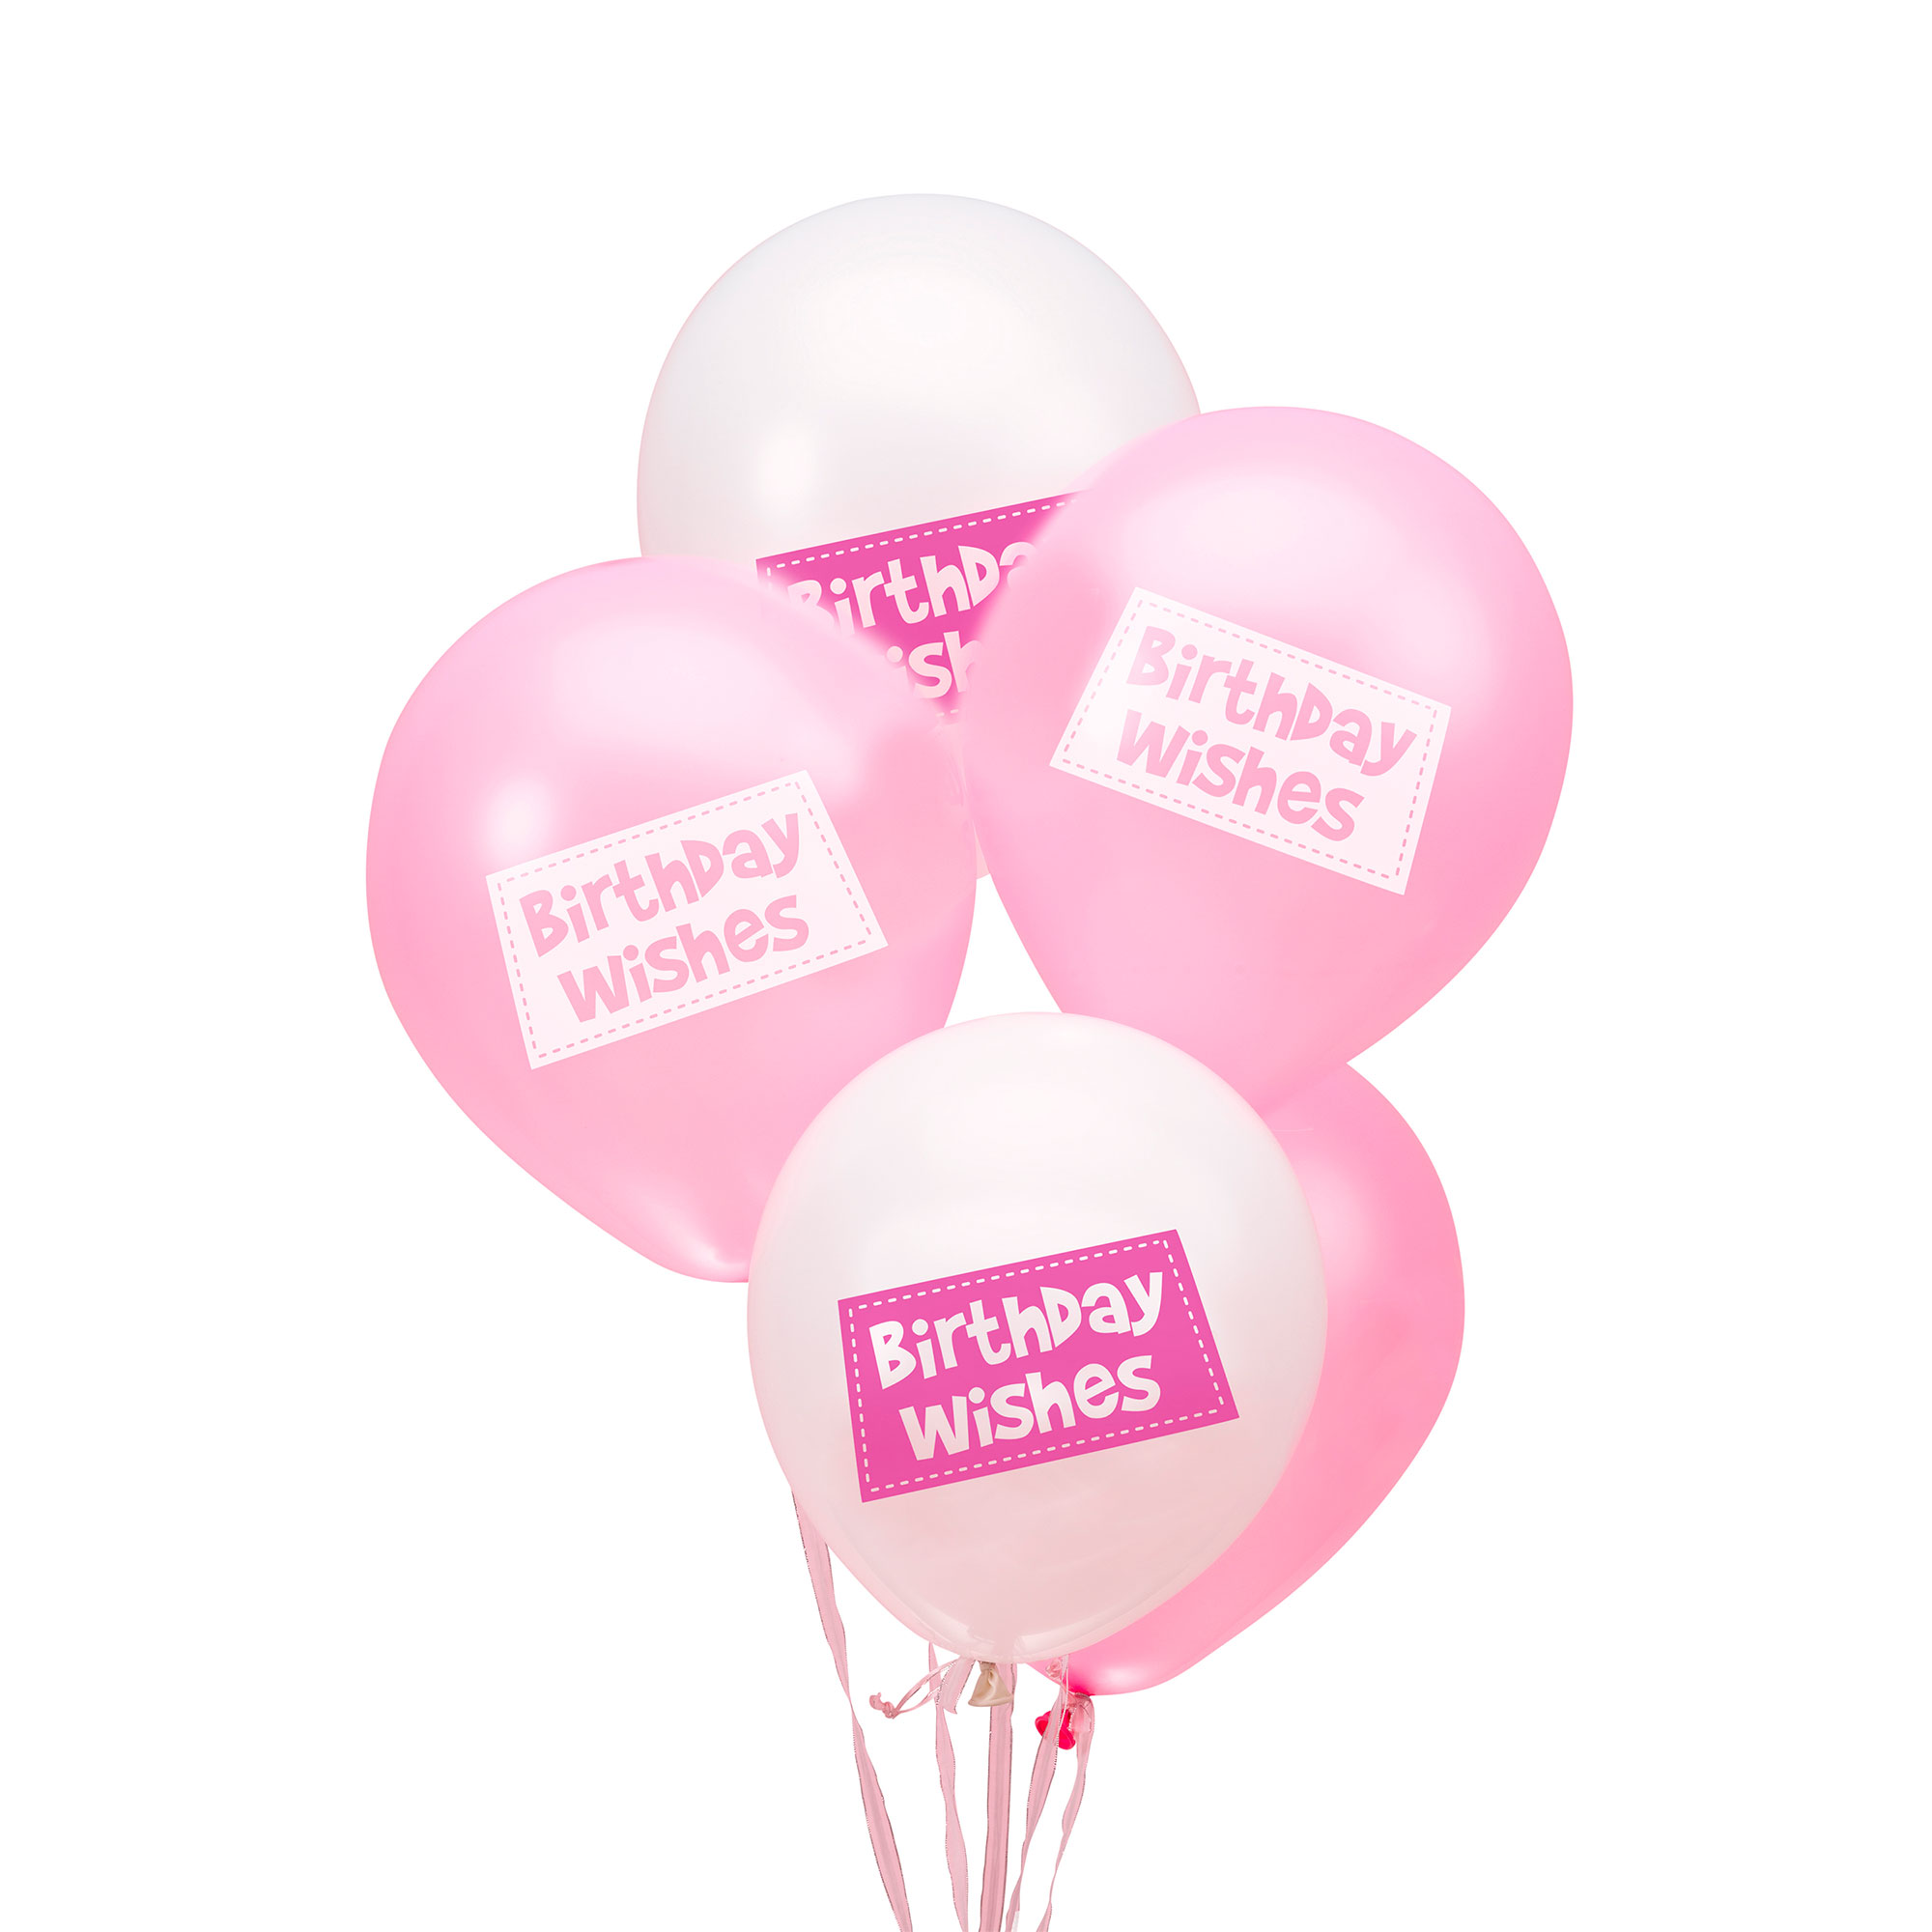 Little Owls - Birthday Wishes Balloons - Pink